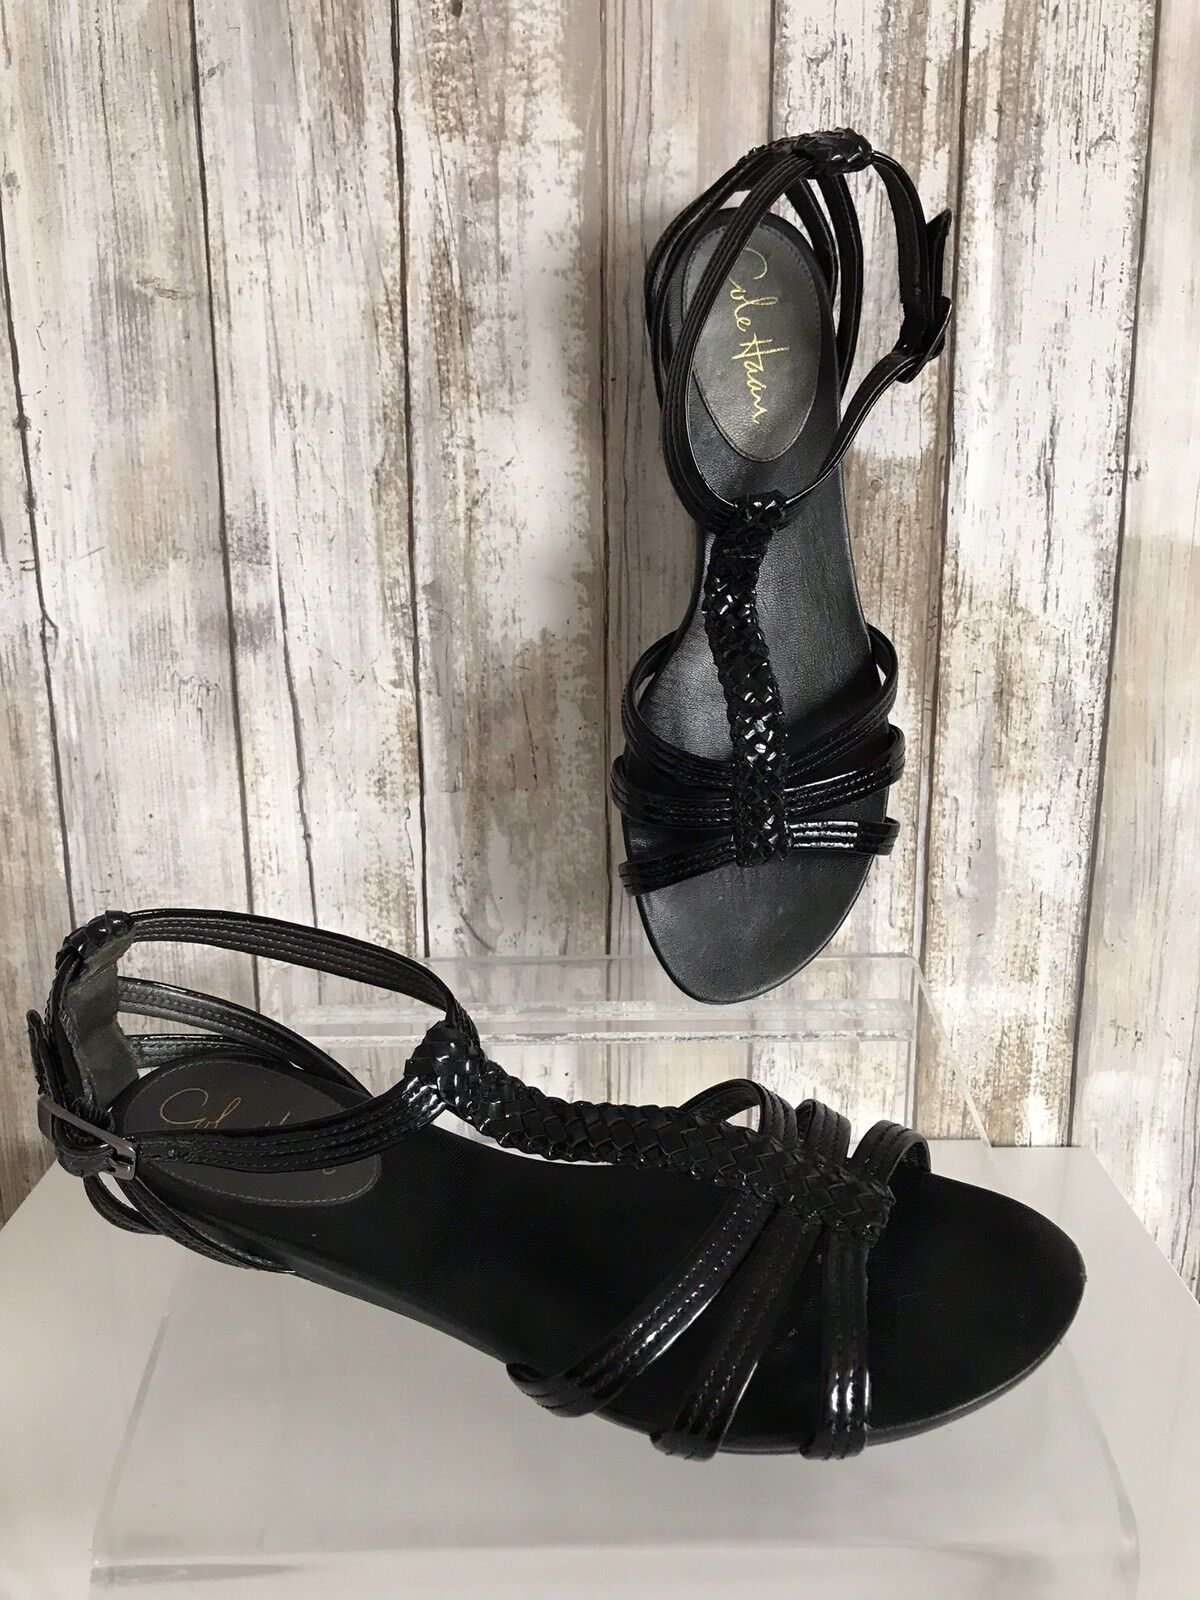 Cole Haan Black Patent Leather Gladiator Sandals Size 9.5  CLASSIC